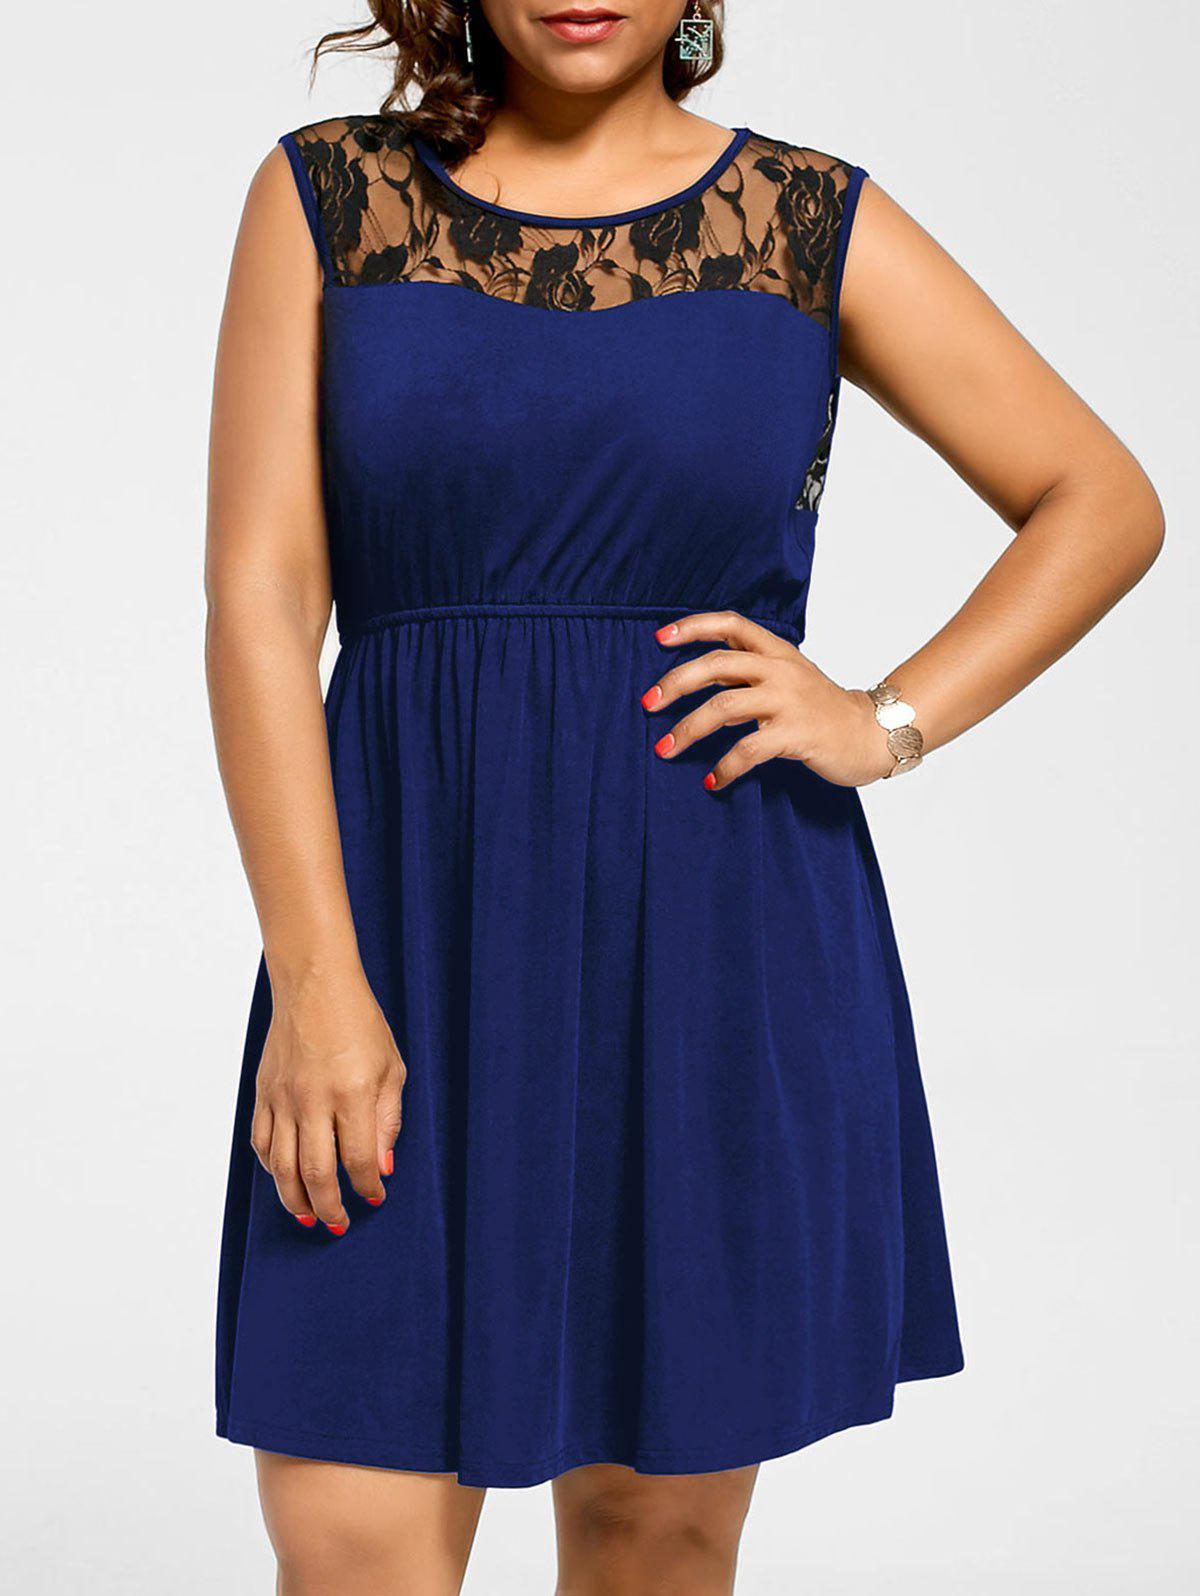 Sleeveless Plus Size Lace Yoke Skater DressWOMEN<br><br>Size: 2XL; Color: BLUE; Style: Brief; Material: Polyester; Silhouette: A-Line; Dresses Length: Knee-Length; Neckline: Round Collar; Sleeve Length: Sleeveless; Embellishment: Lace; Pattern Type: Floral; With Belt: No; Season: Summer; Weight: 0.3500kg; Package Contents: 1 x Dress;